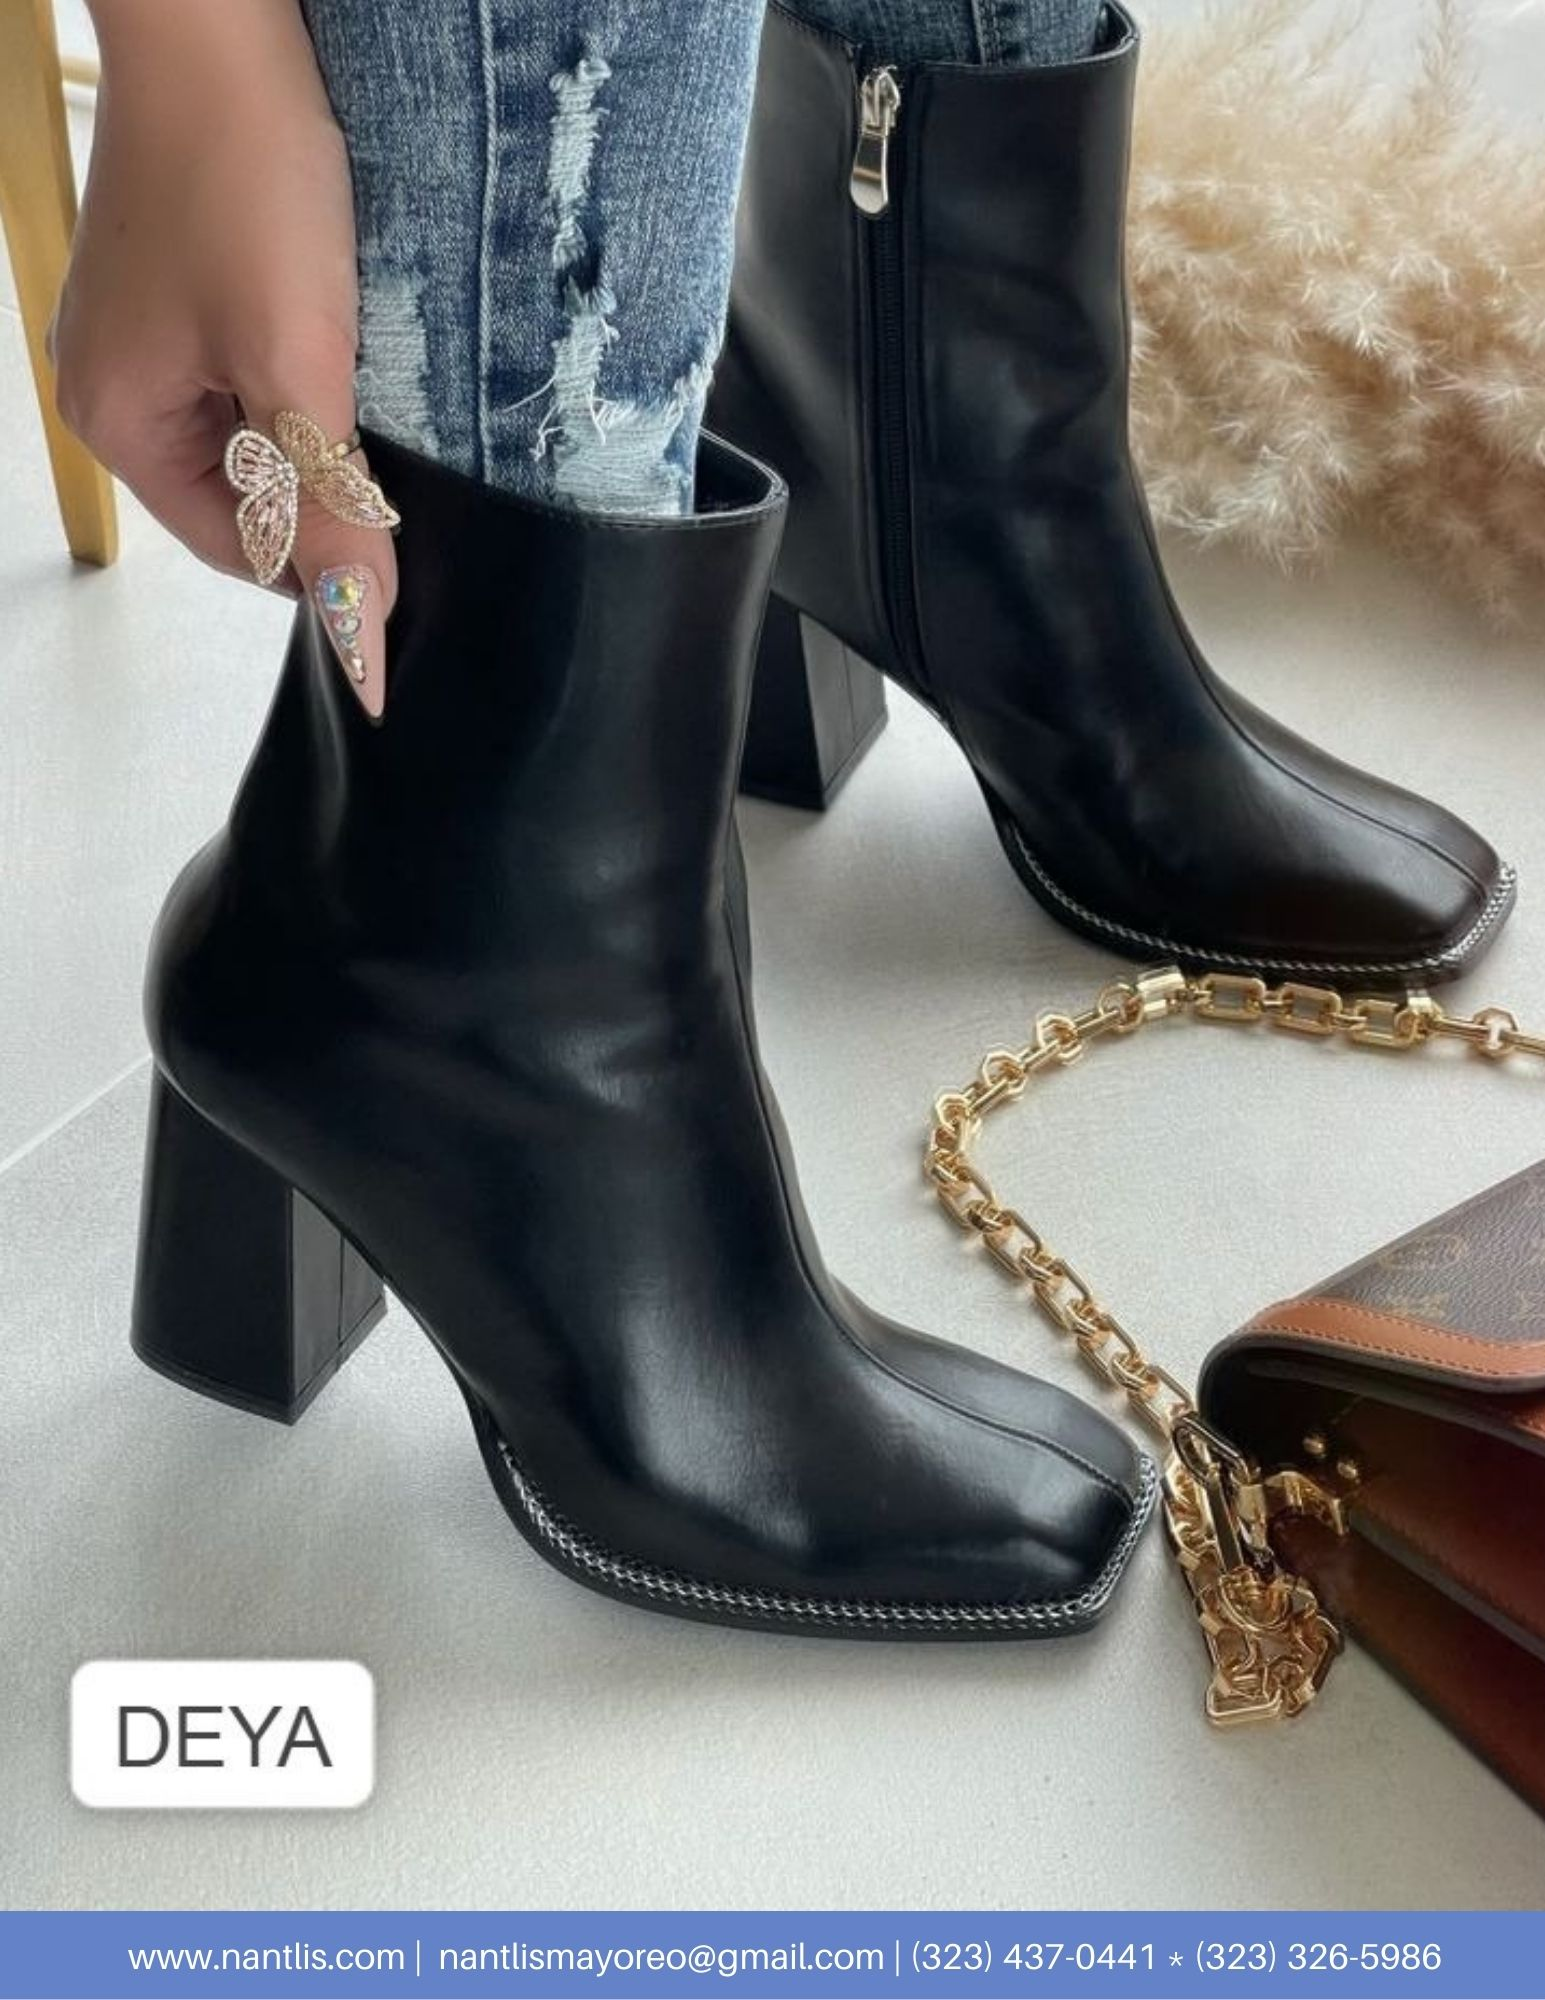 Nantlis Vol AN22 Botas Mujer mayoreo Catalogo Wholesale boots for women page 05